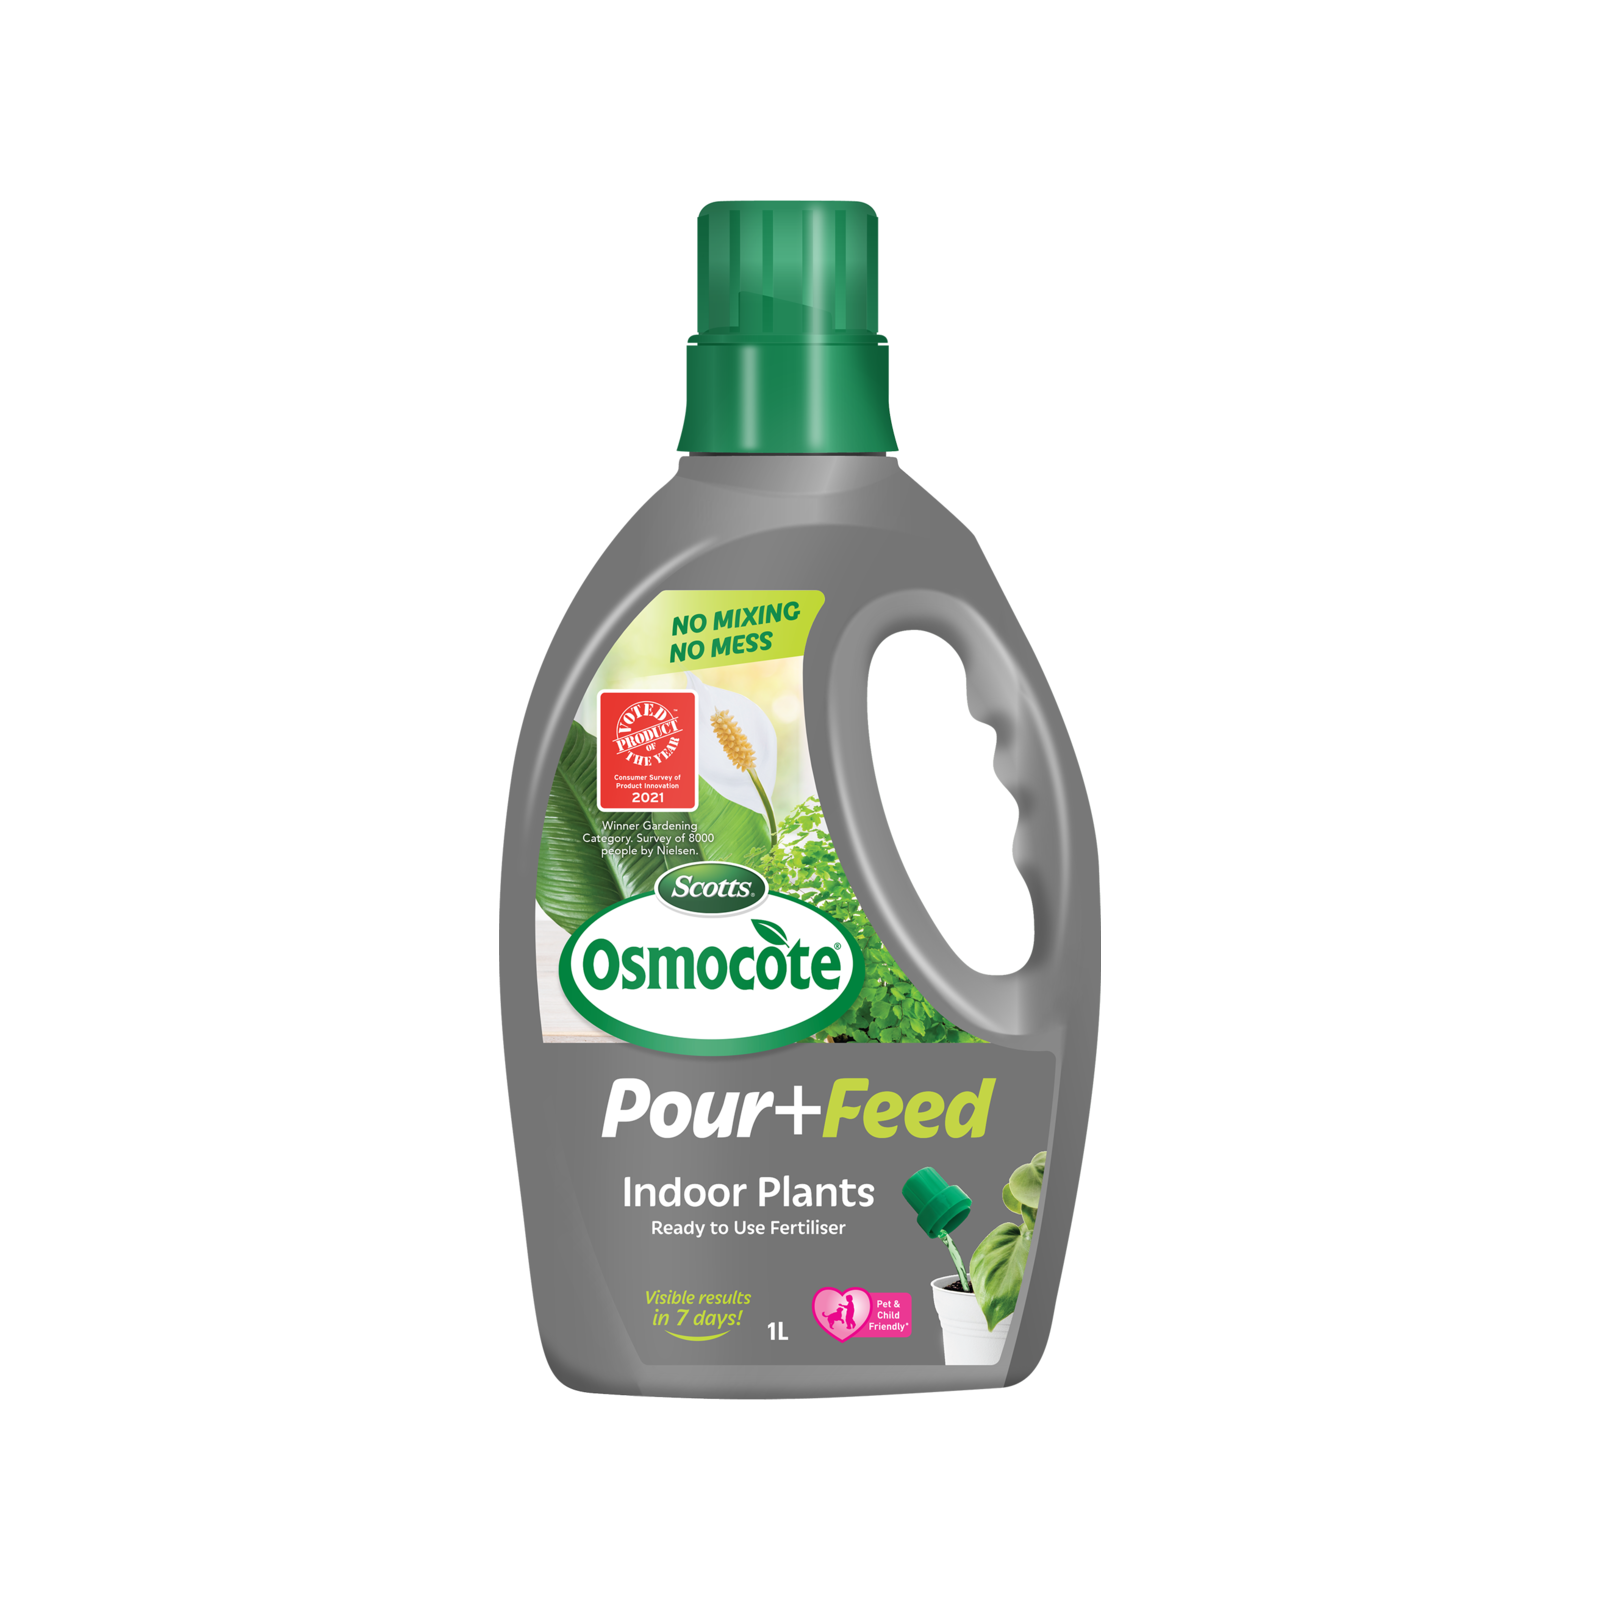 Scotts Osmocote 1L Pour+Feed Indoor Plants